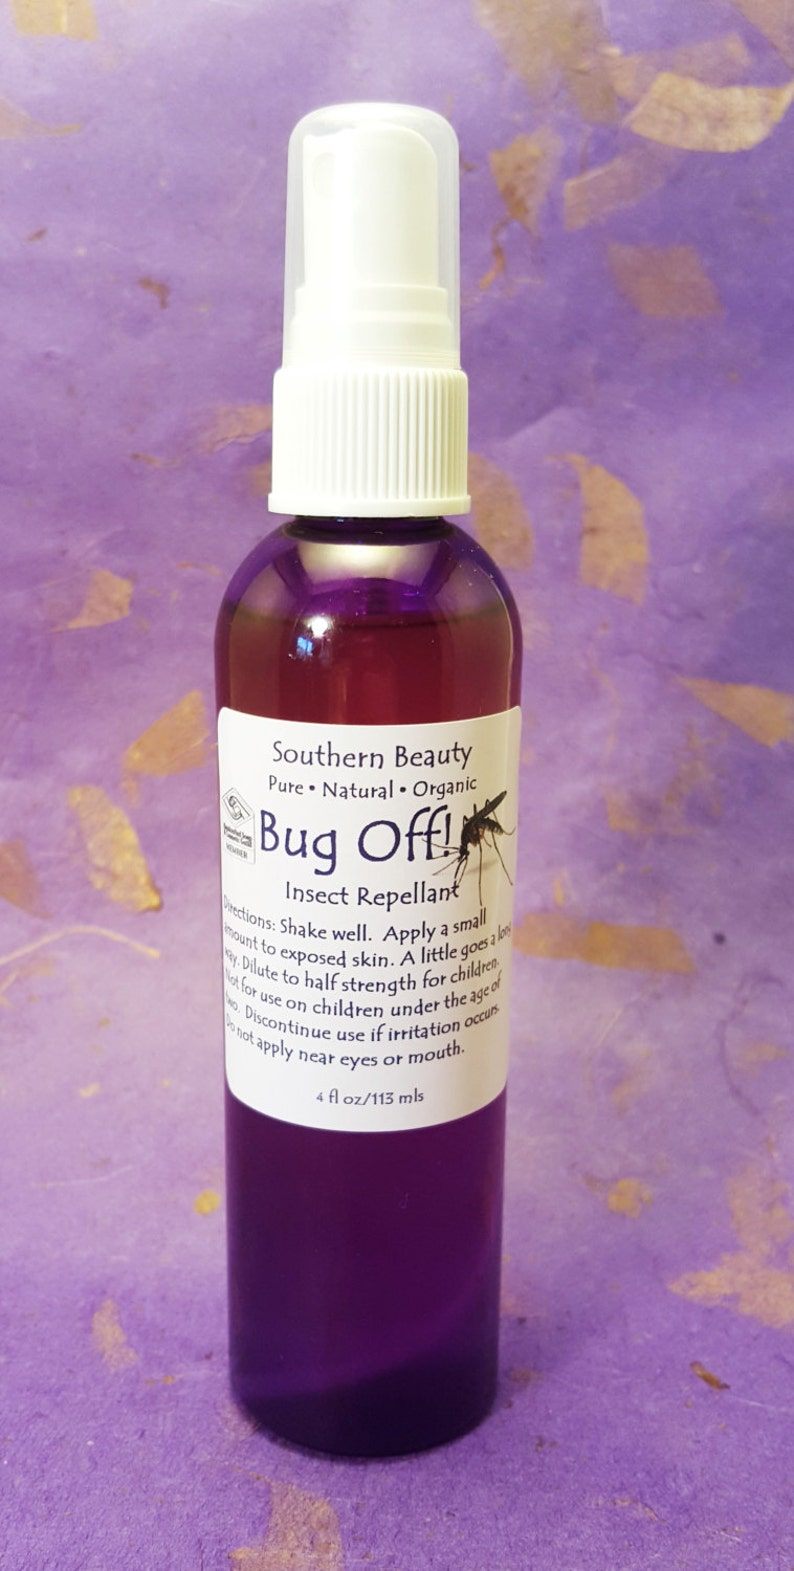 Bug Off Mosquitoes Fleas Camping Outdoors Repellant image 0